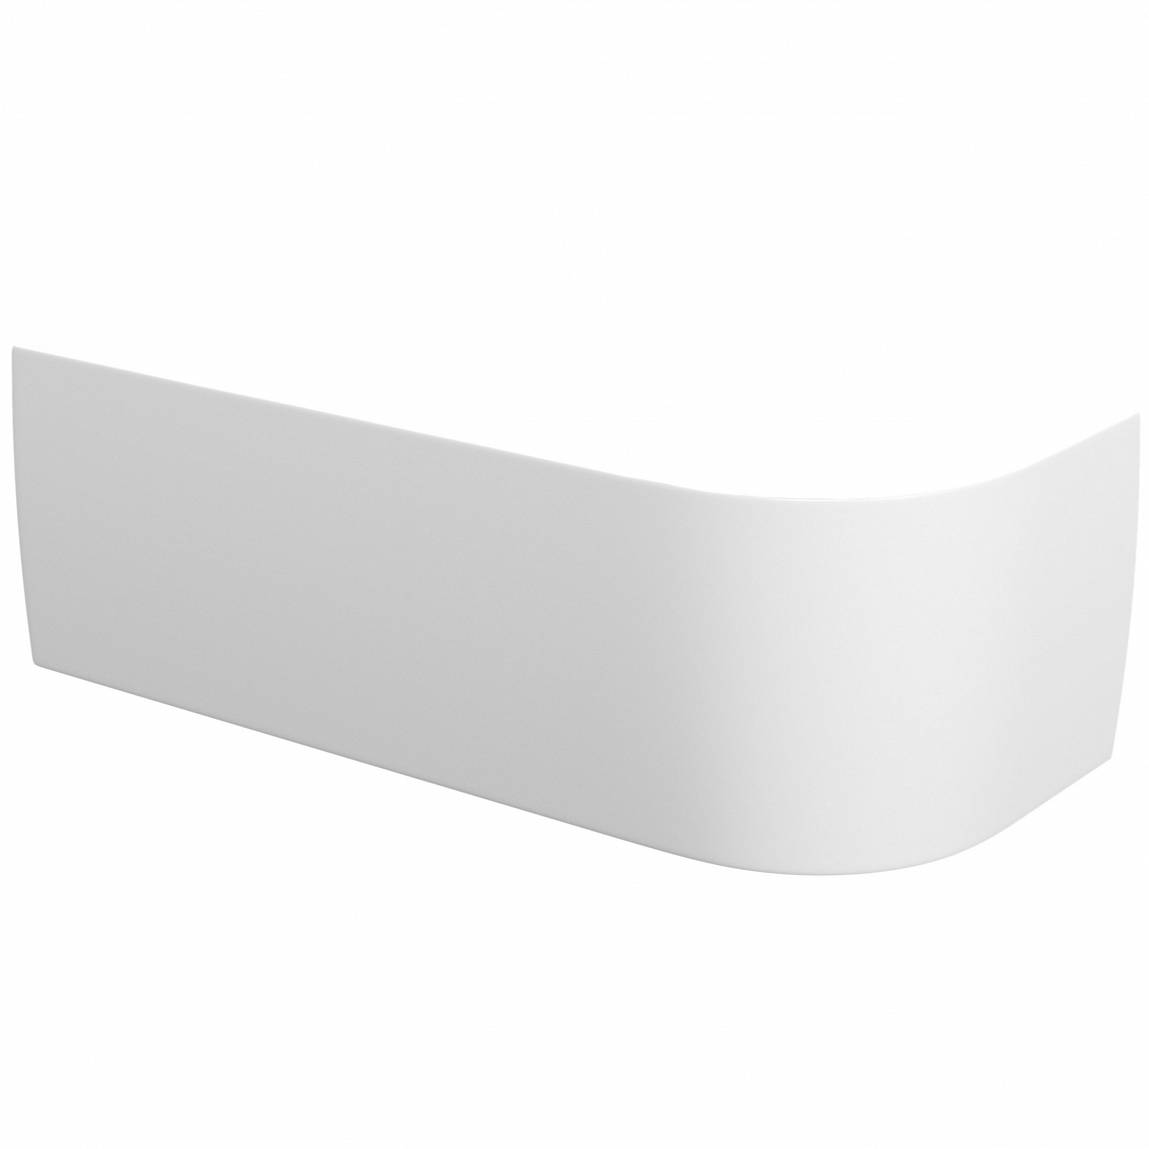 Image of Cayman D-Shaped Back to Wall Corner Bath Panel LH